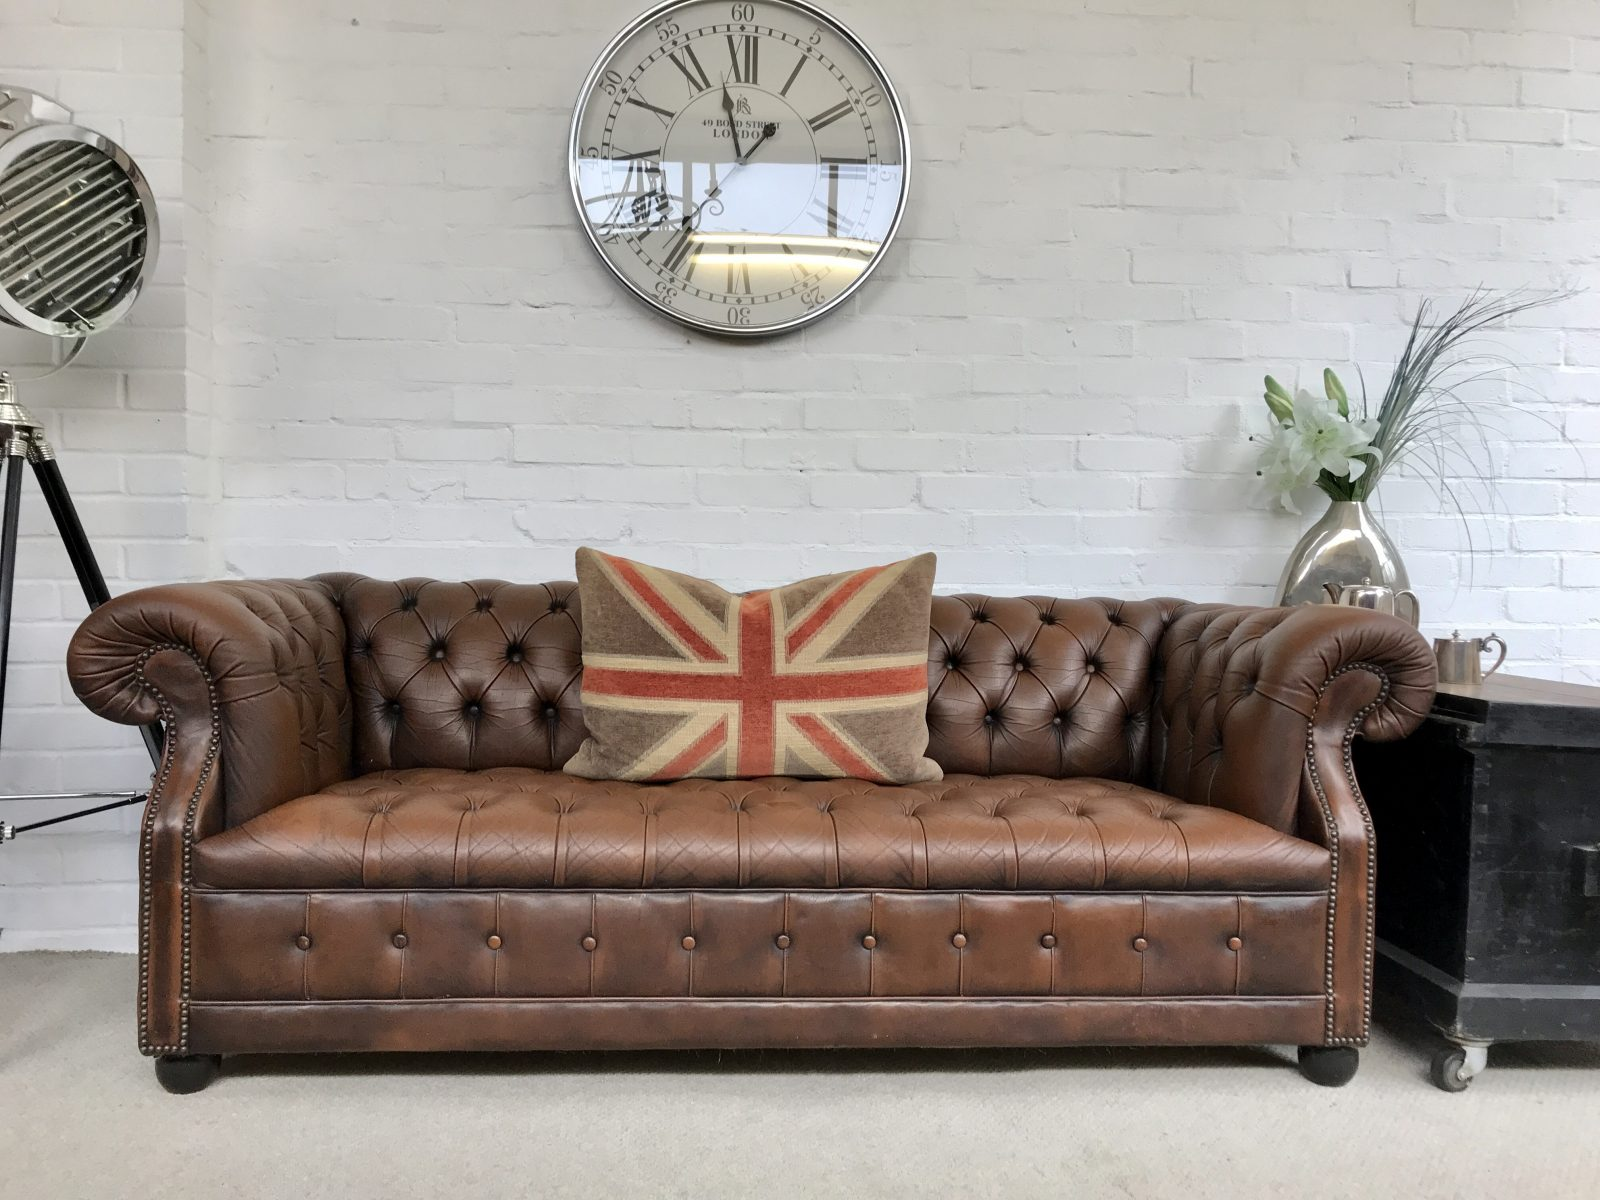 Vintage Pendragon Chesterfield Sofa…..SOLD.